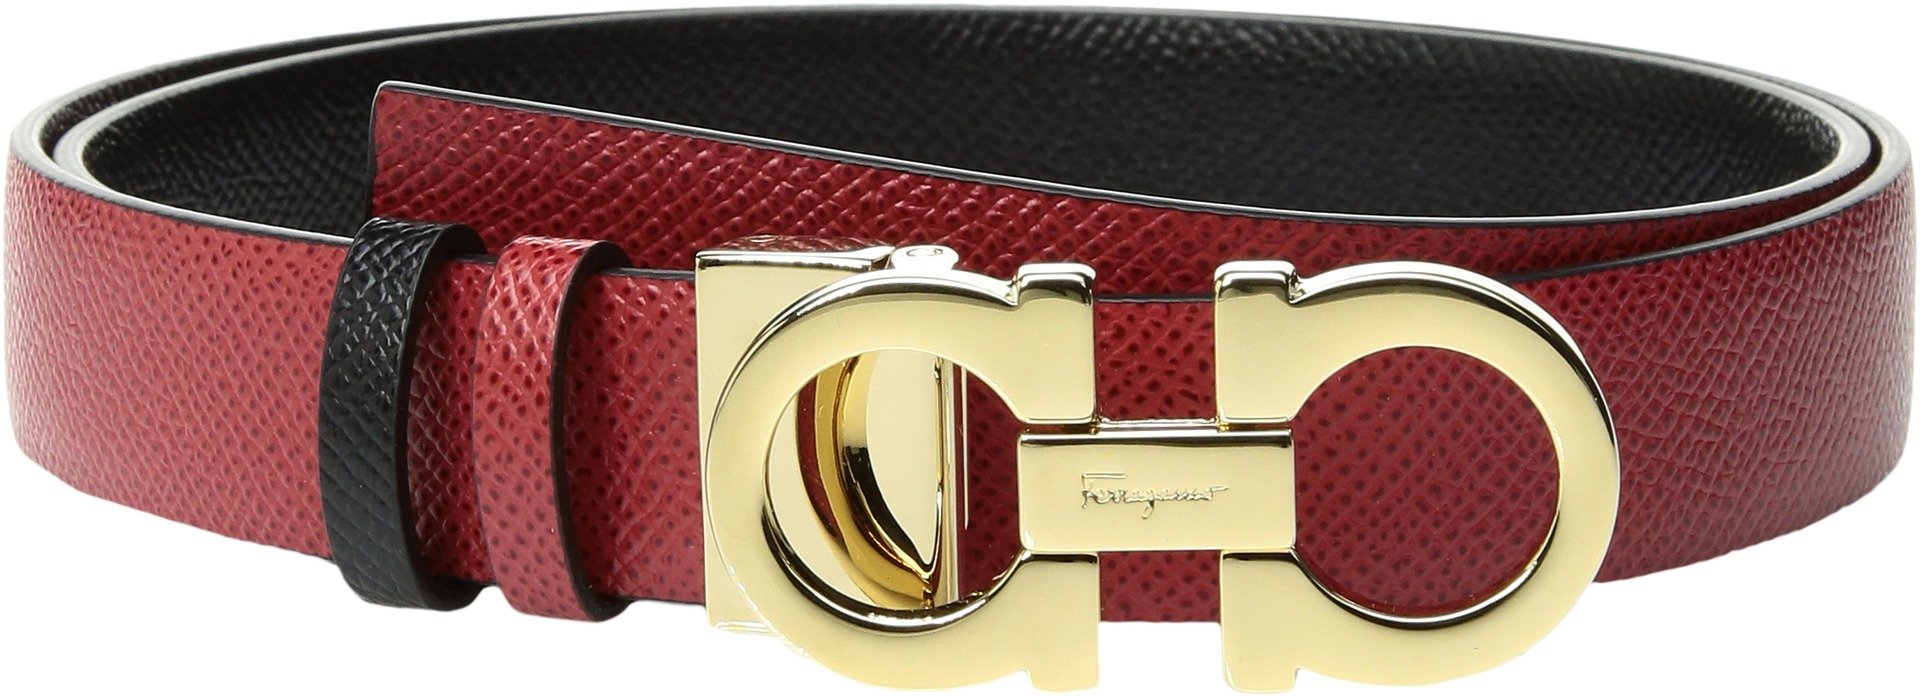 Salvatore Ferragamo Women's 23A565 Lipstick Belt